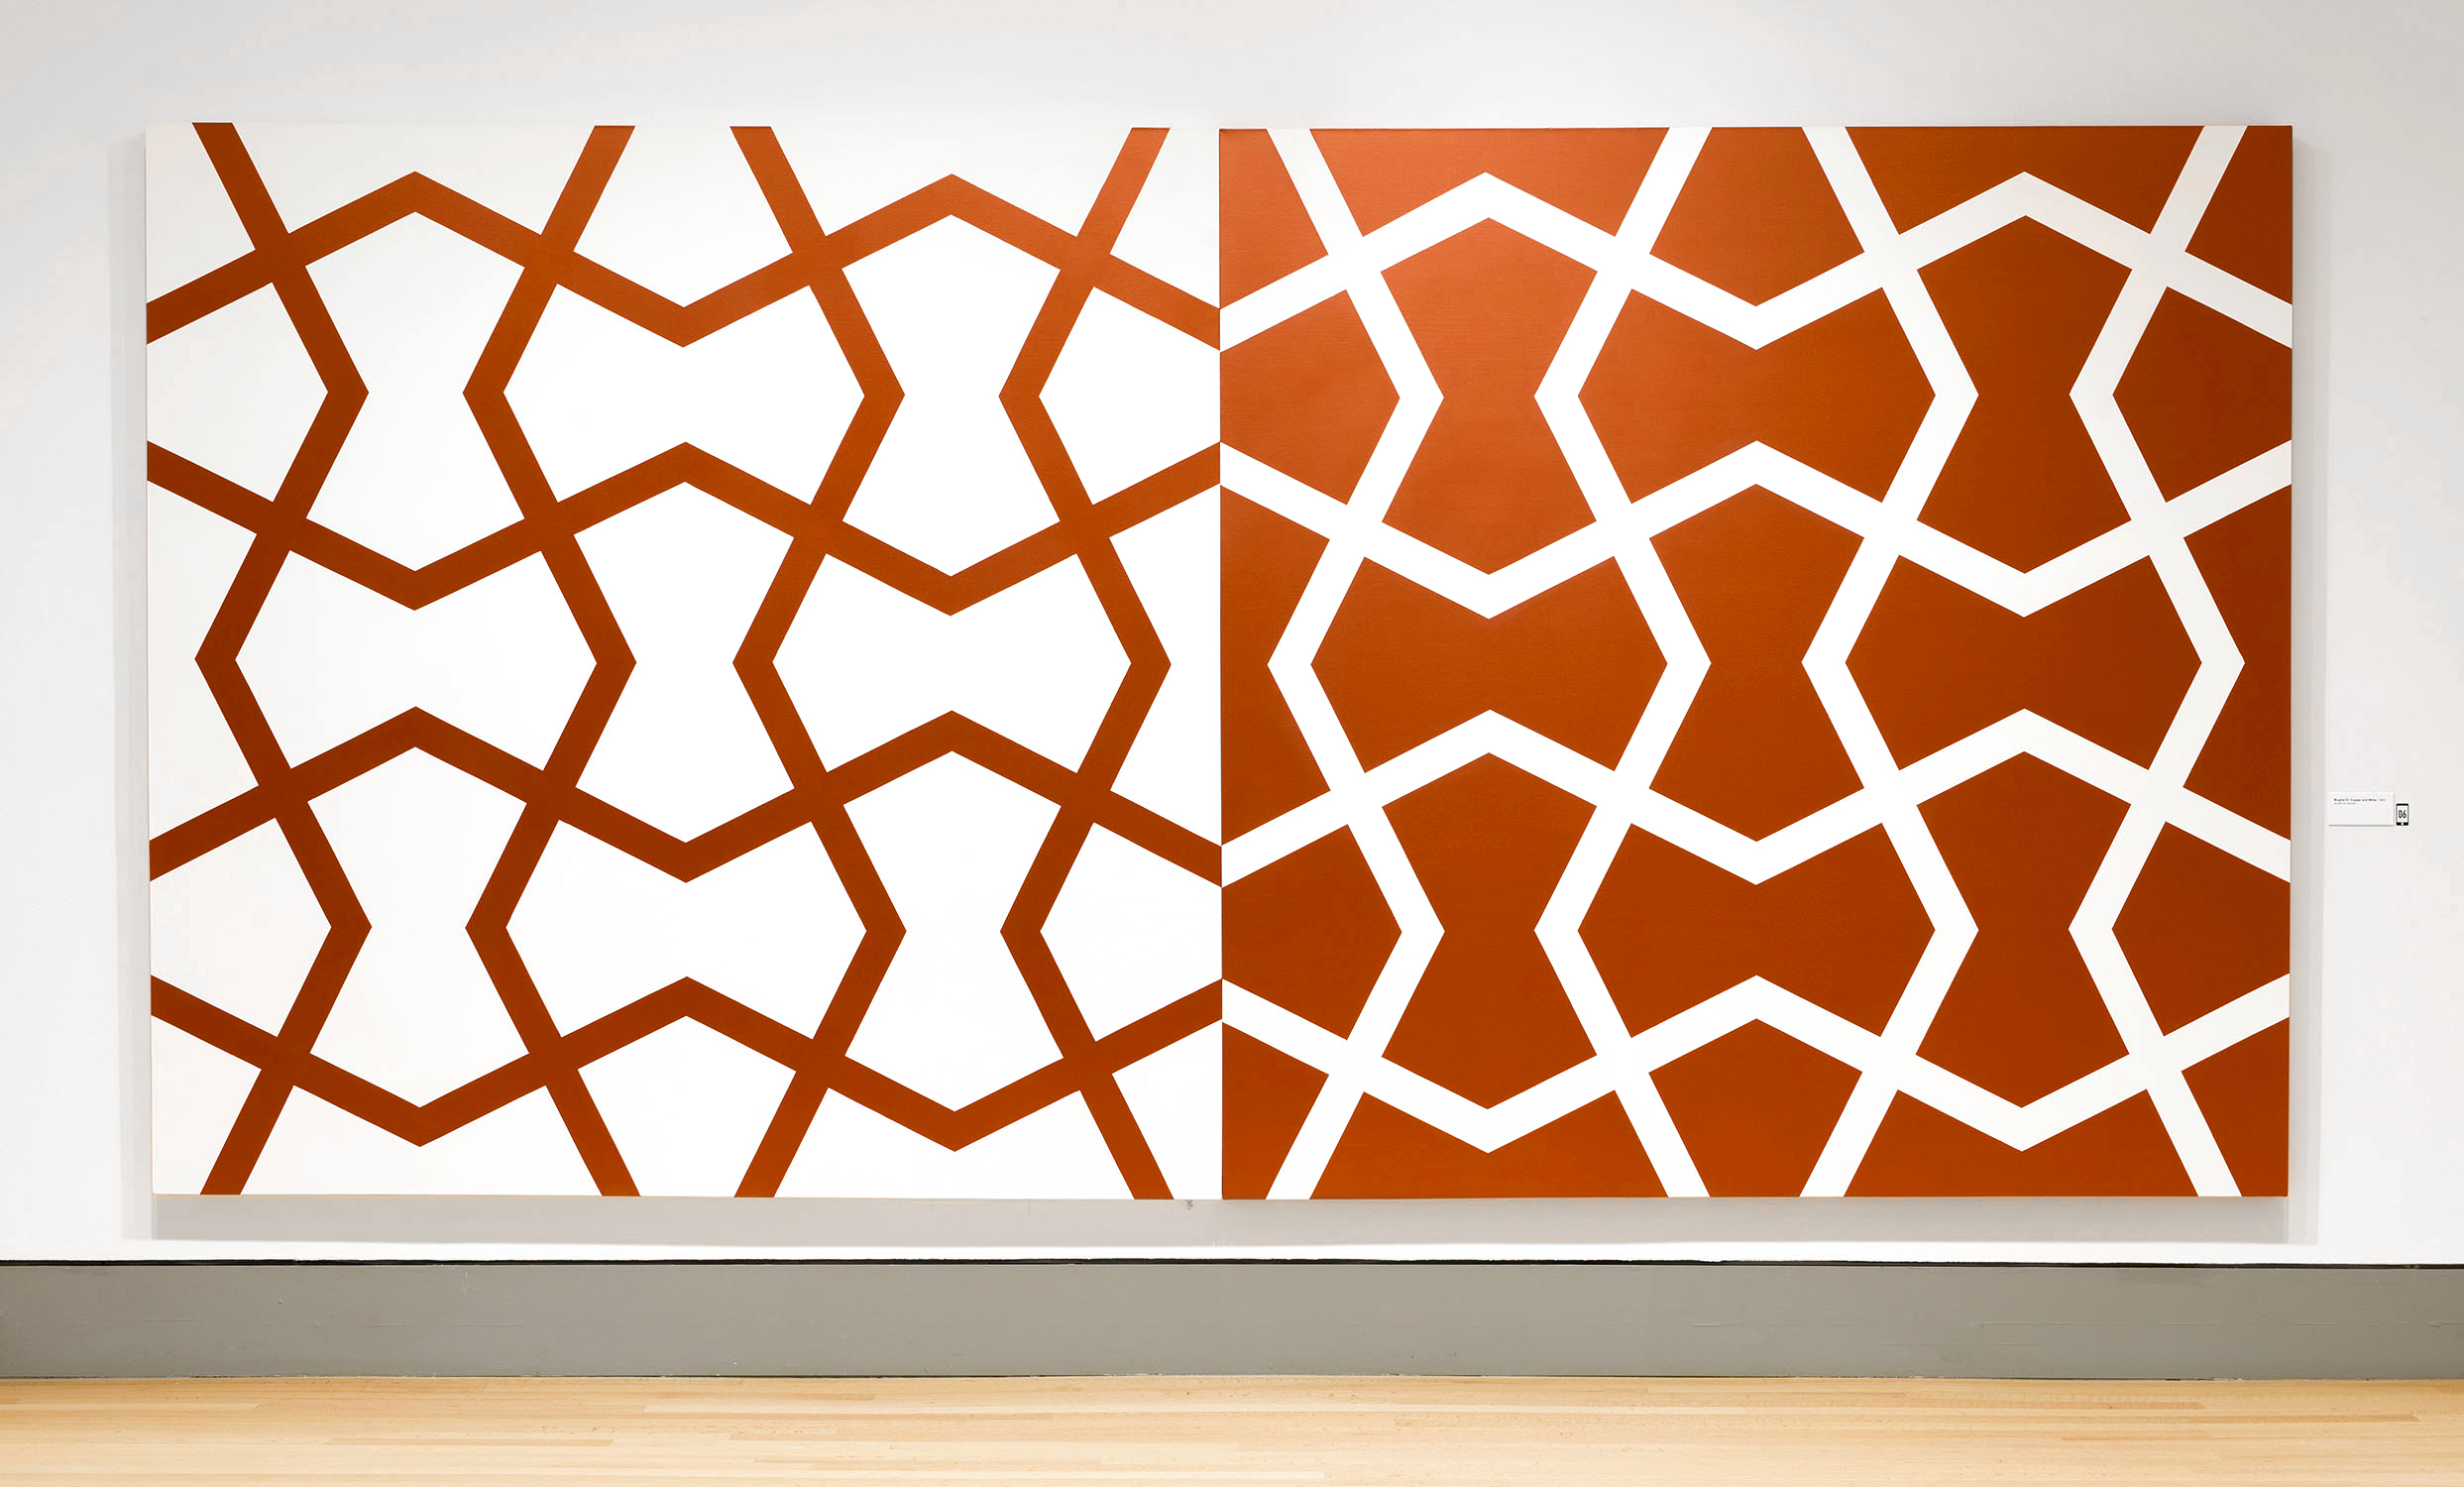 Mughal IV: Copper and White   1984. Acrylic on 2 canvases. 96 x 192 in., 243.8 x 487.7 cm.